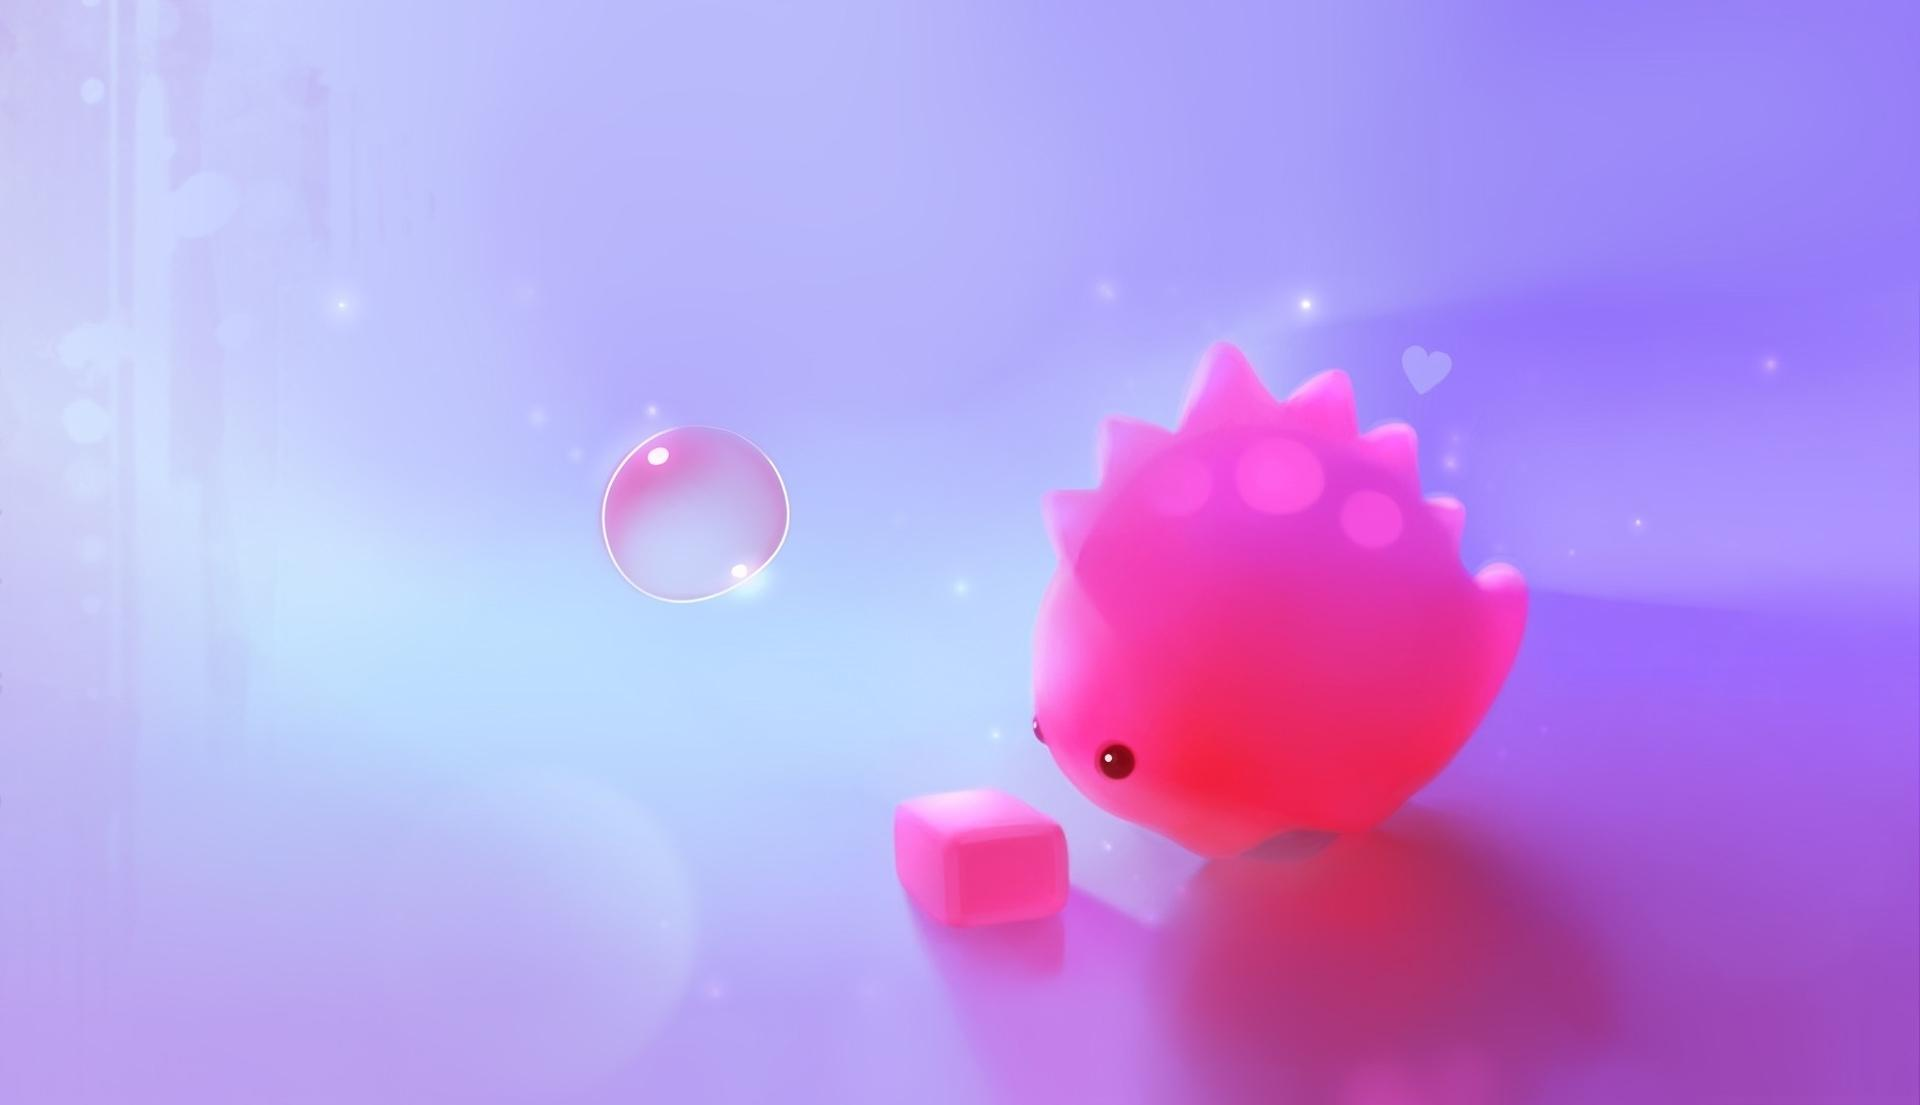 Wallpaper Dino Cute Hd Pink Bubble Wallpapers Pixelstalk Net